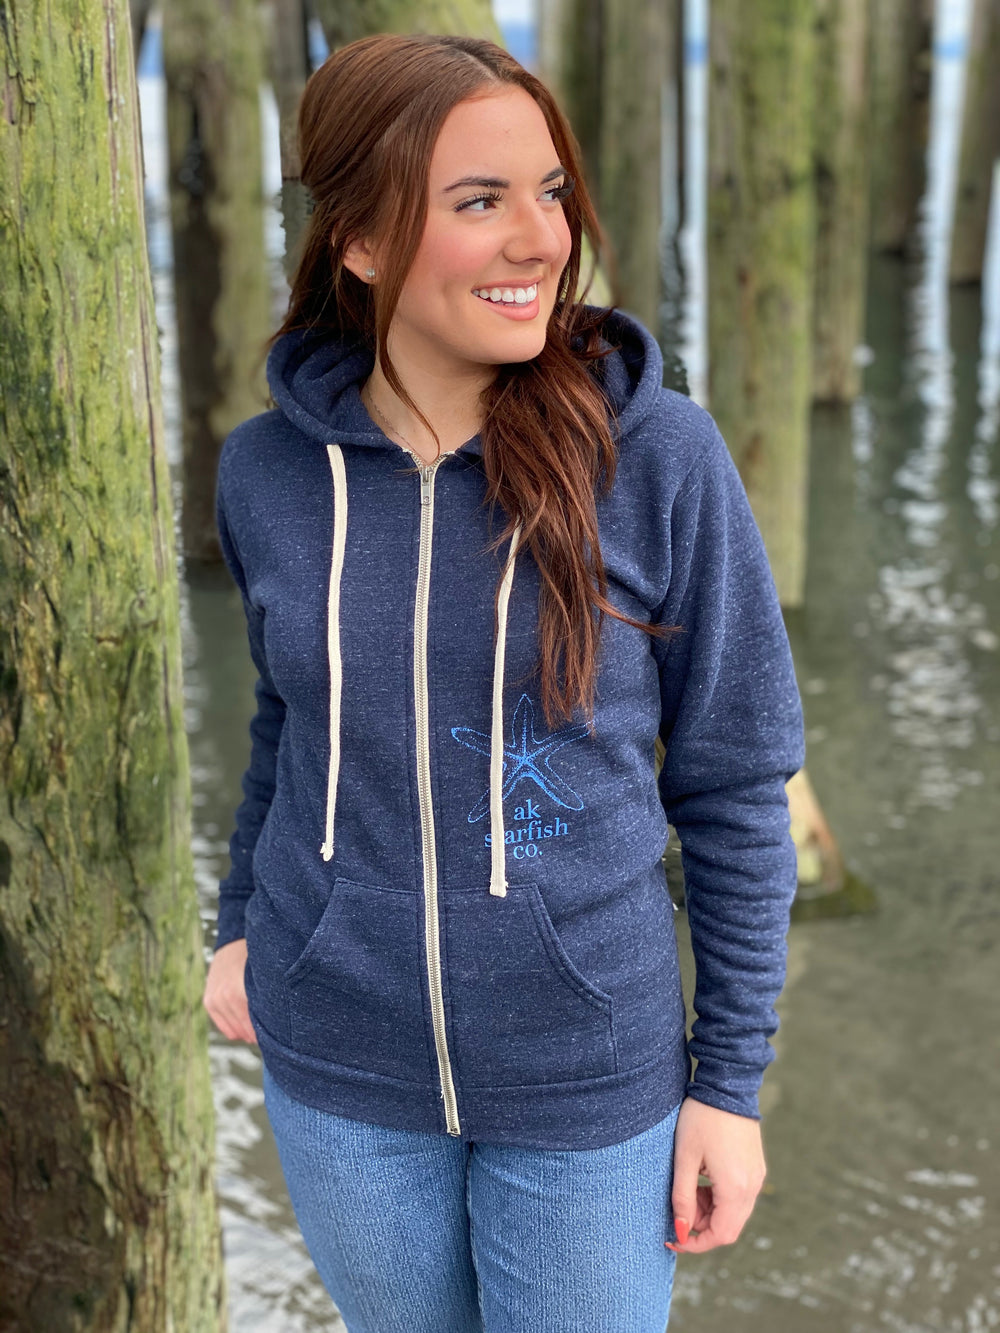 Nautical AK Starfish Co. Unisex Triblend Zipped Hoody